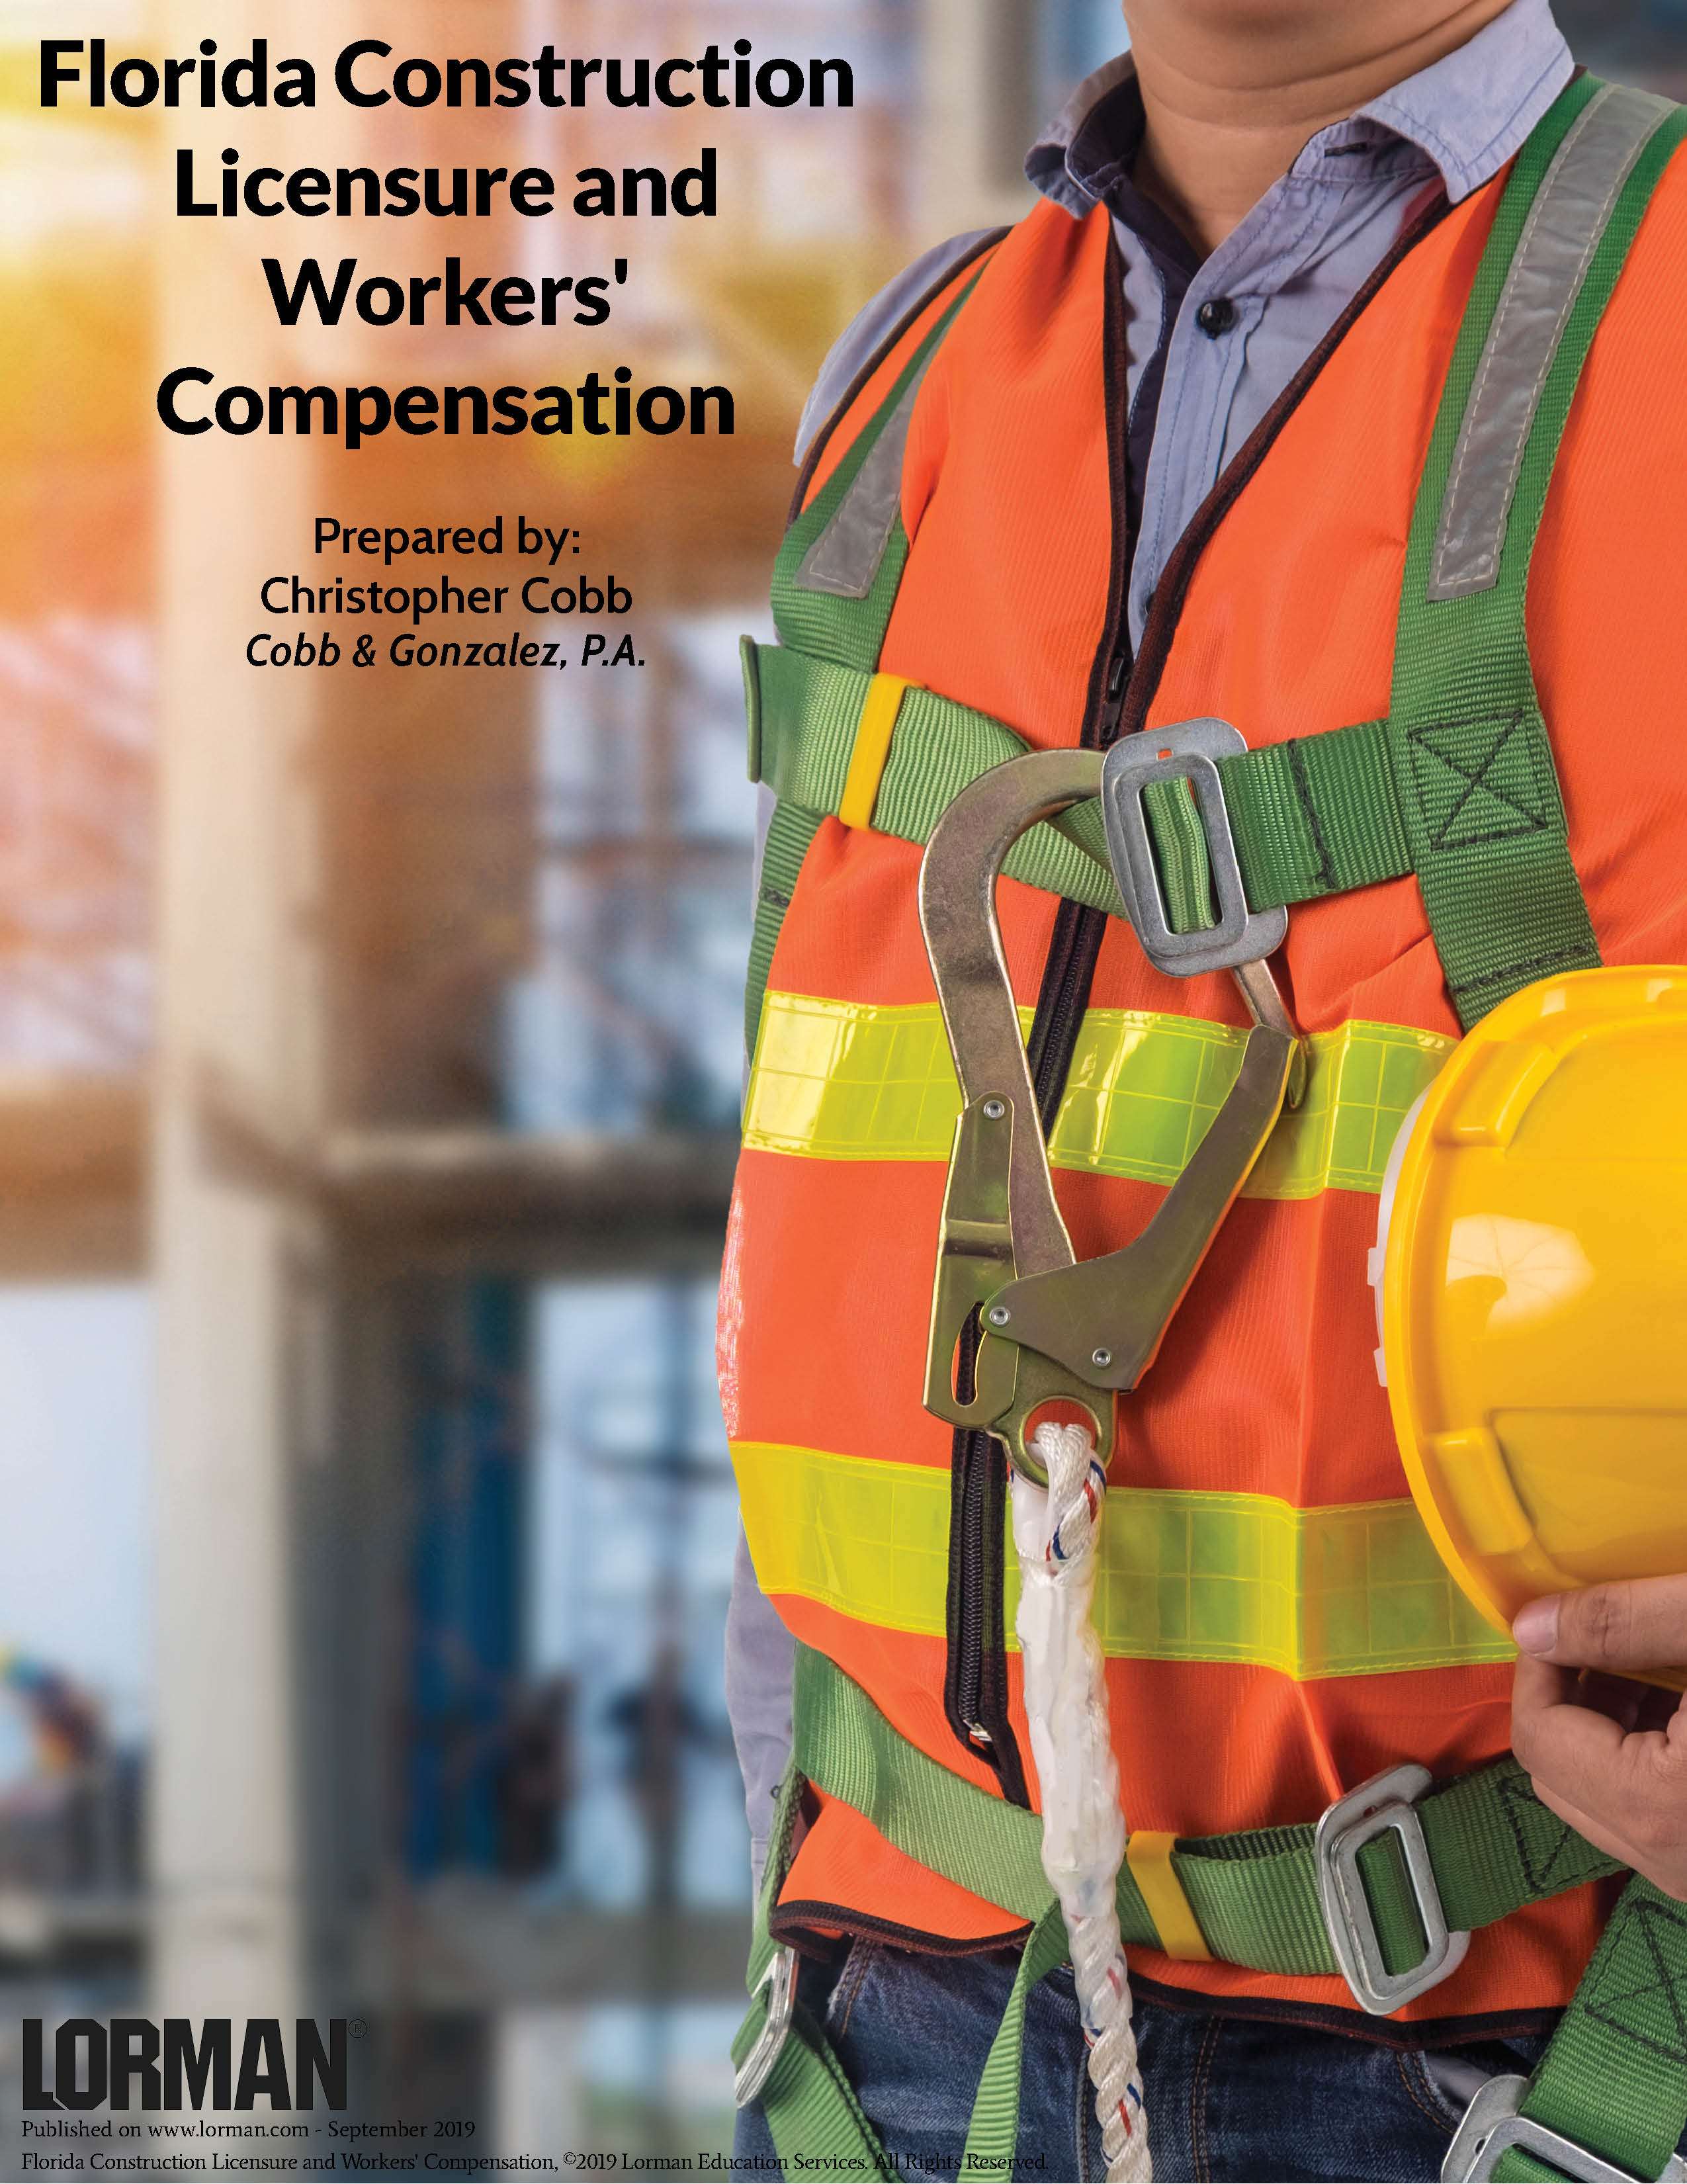 Florida Construction Licensure and Workers' Compensation